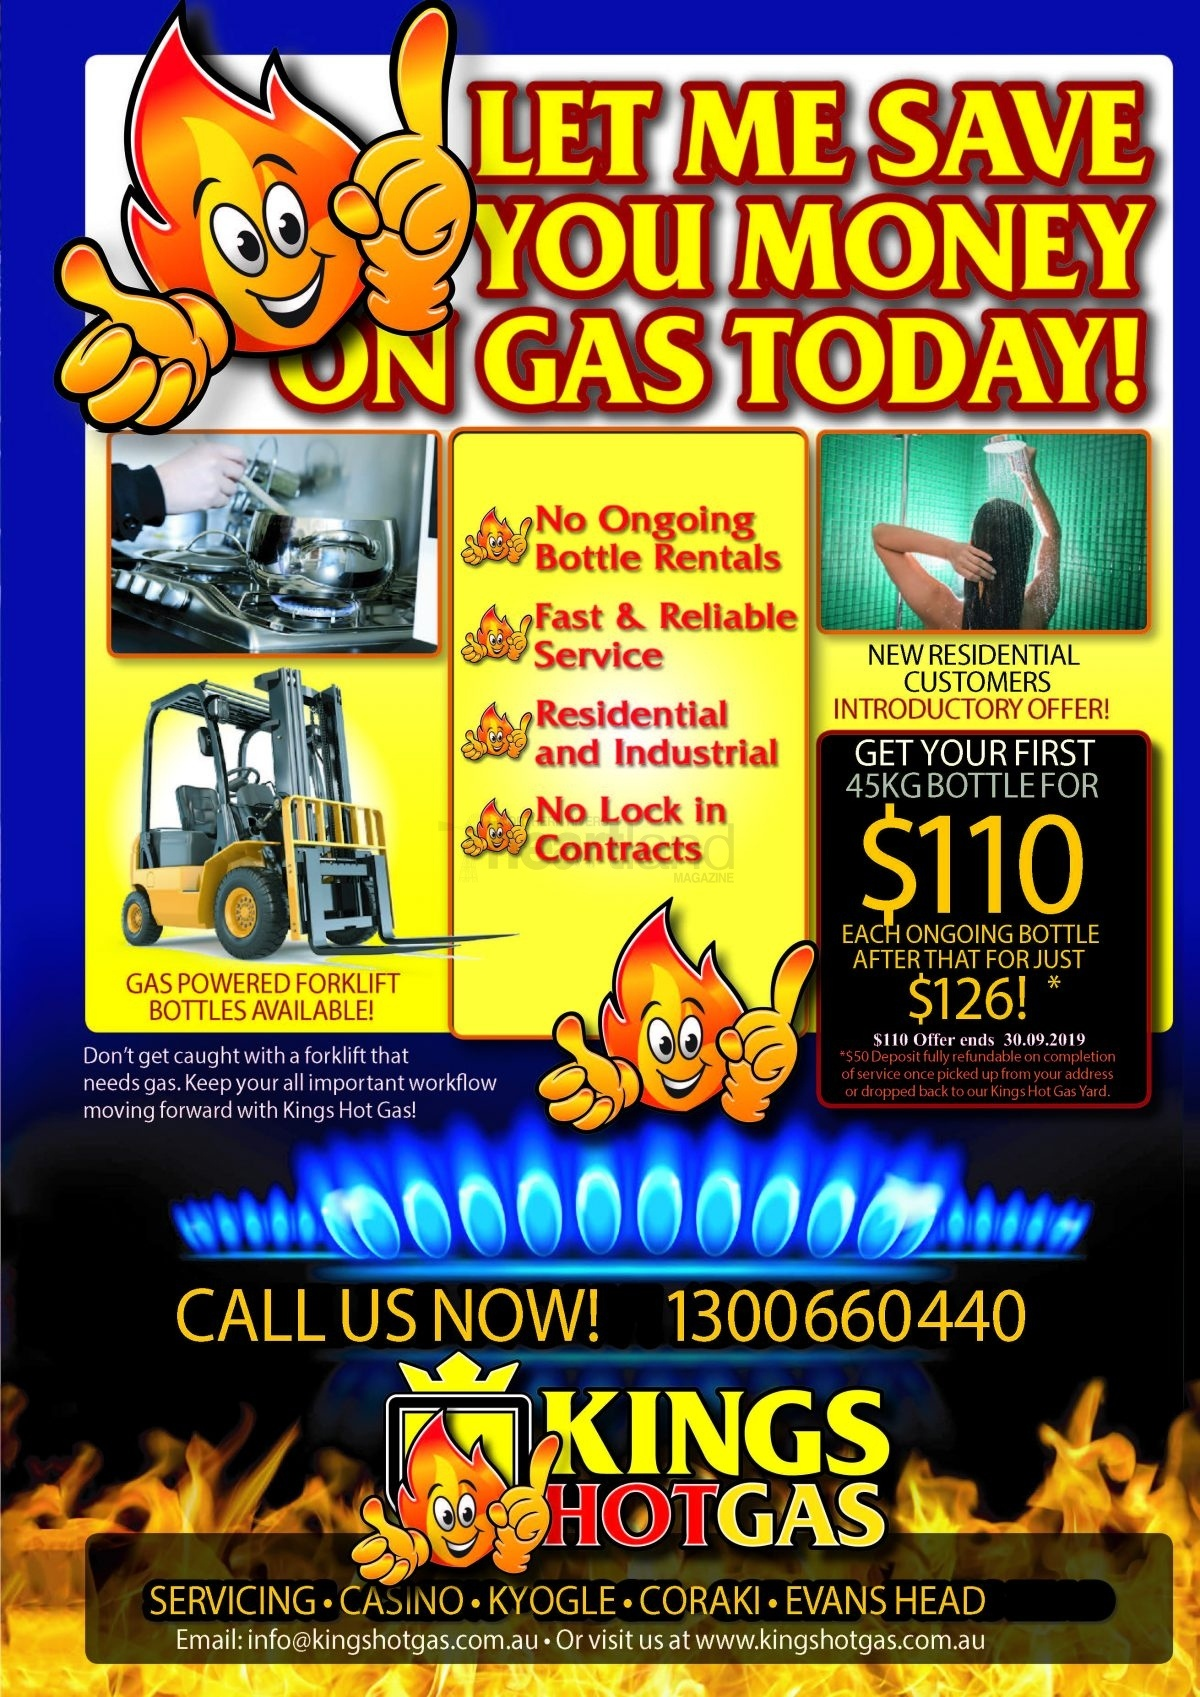 Kings HotGas Casino NSW, Heartland Magazine NSW Northern Rivers